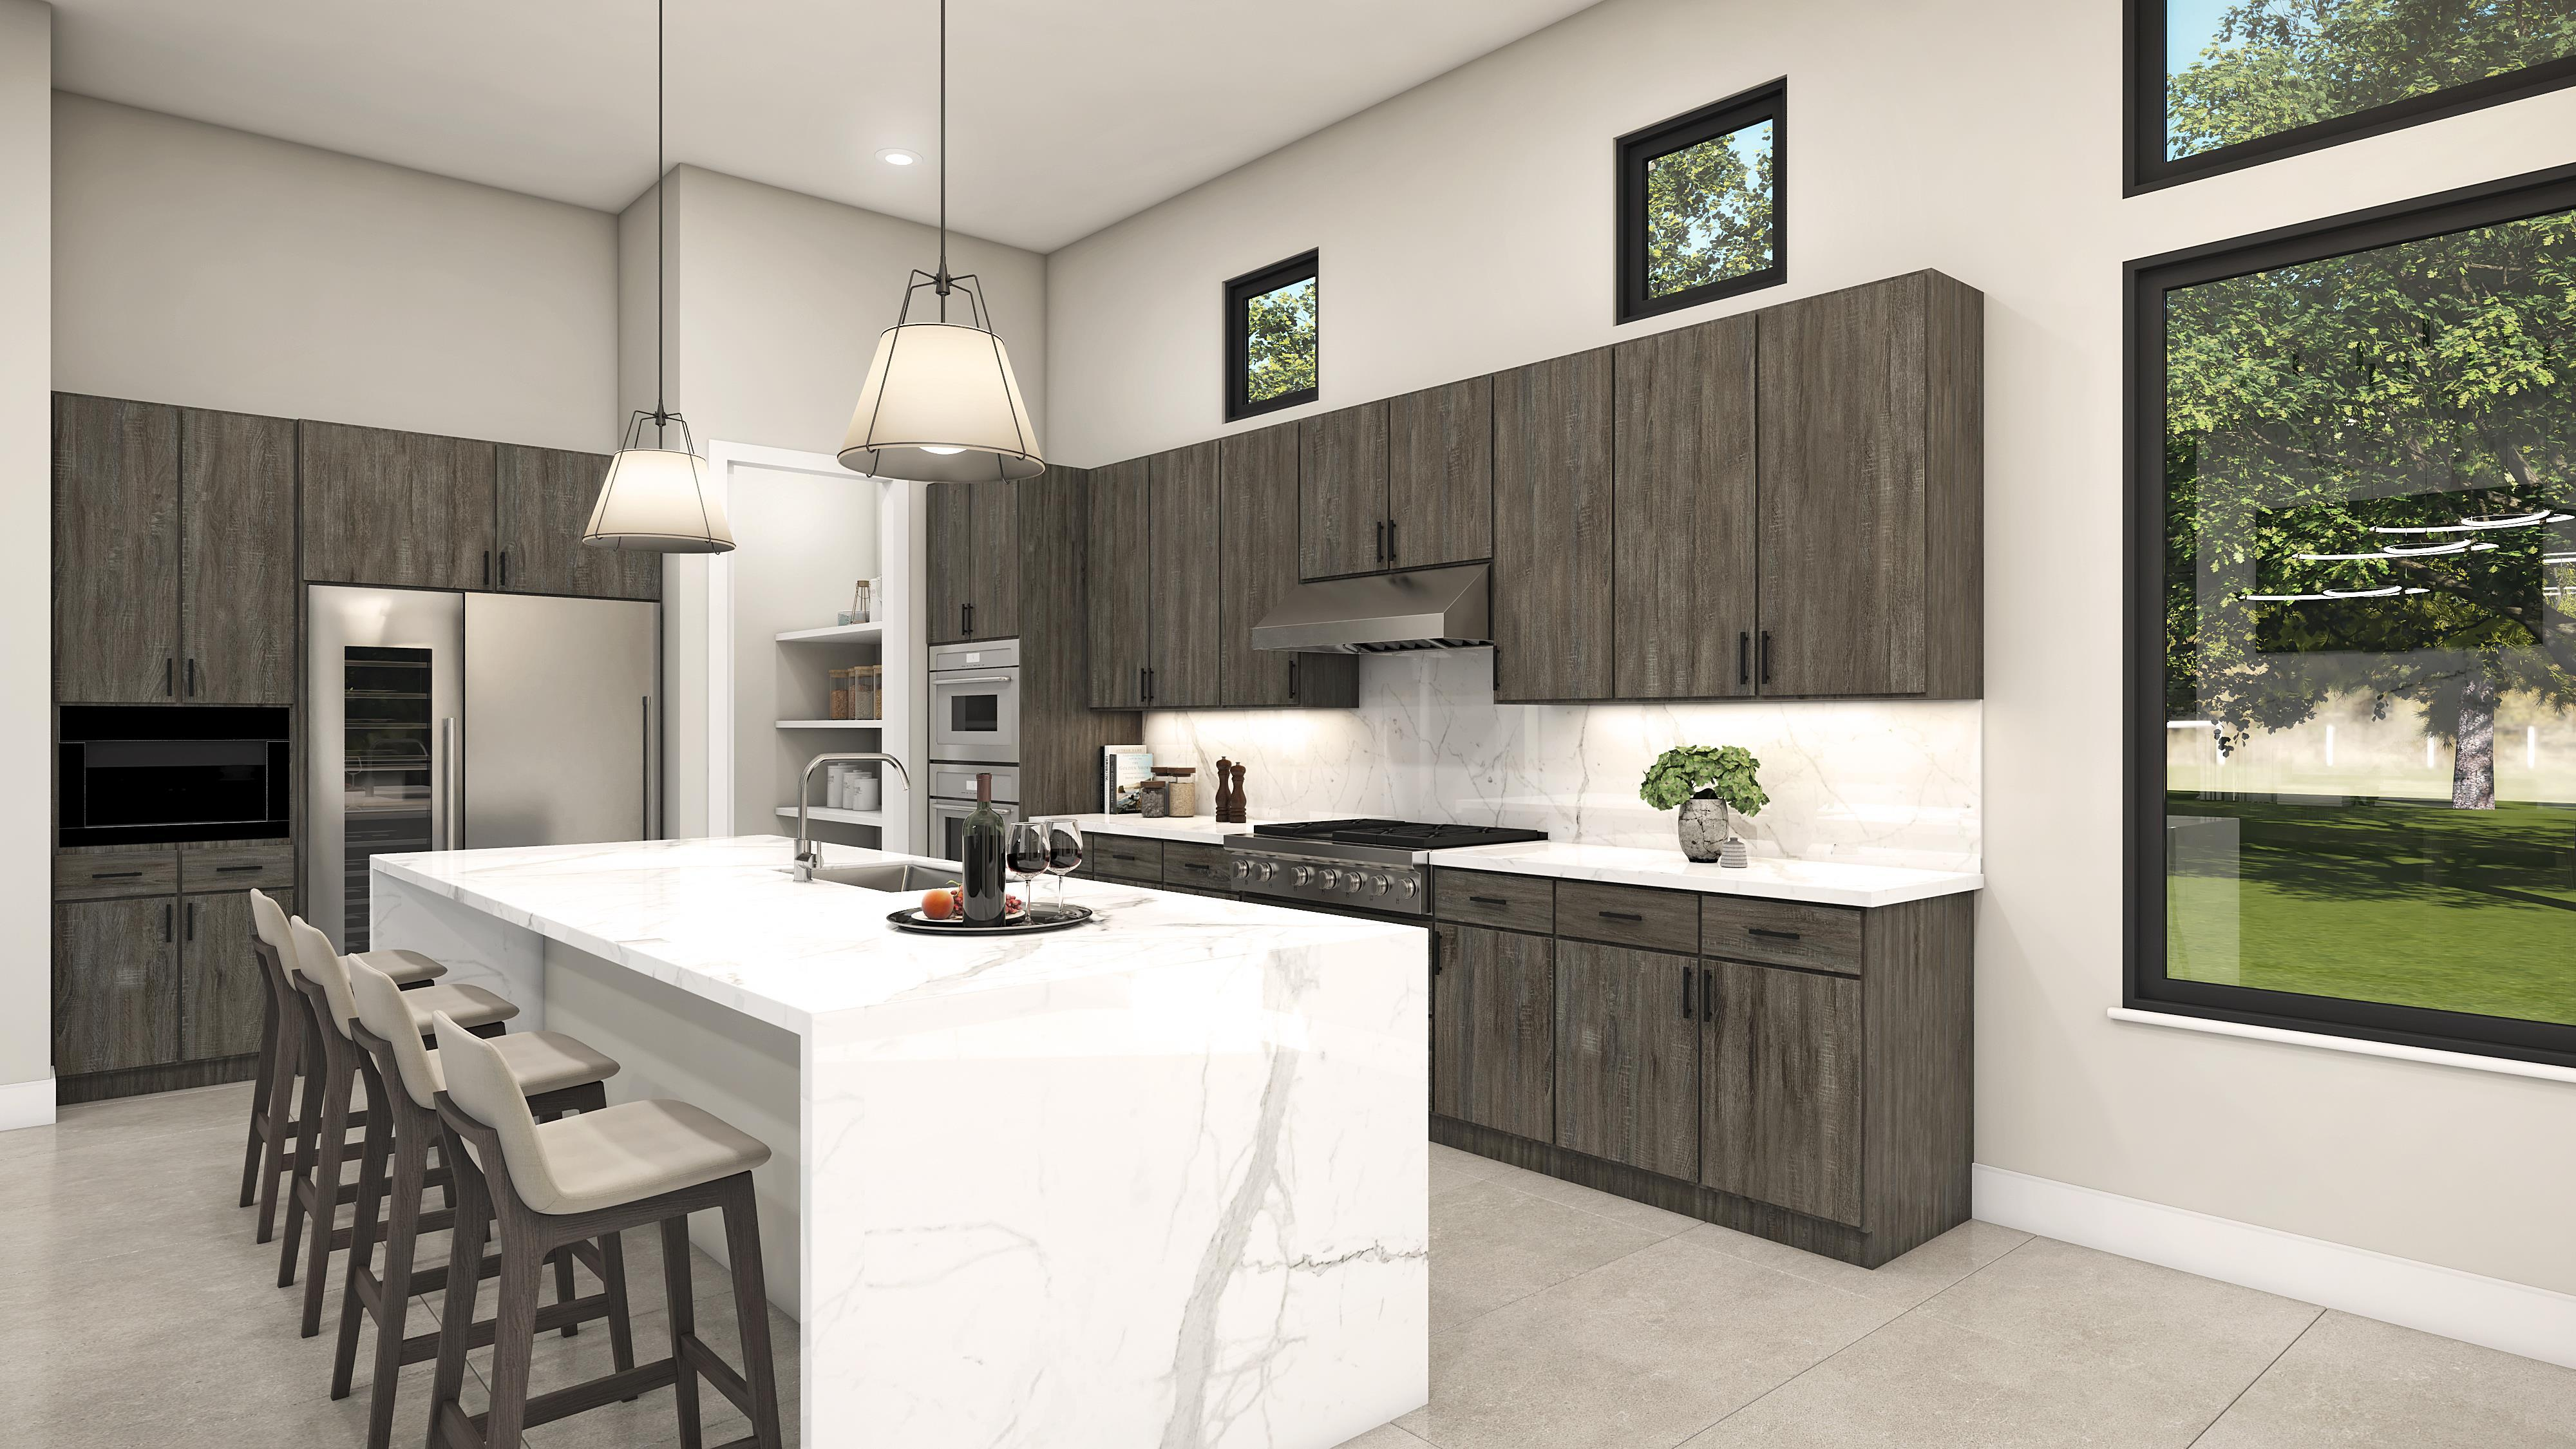 Kitchen featured in the Plan 2-A By Copper Valley  in Stockton-Lodi, CA